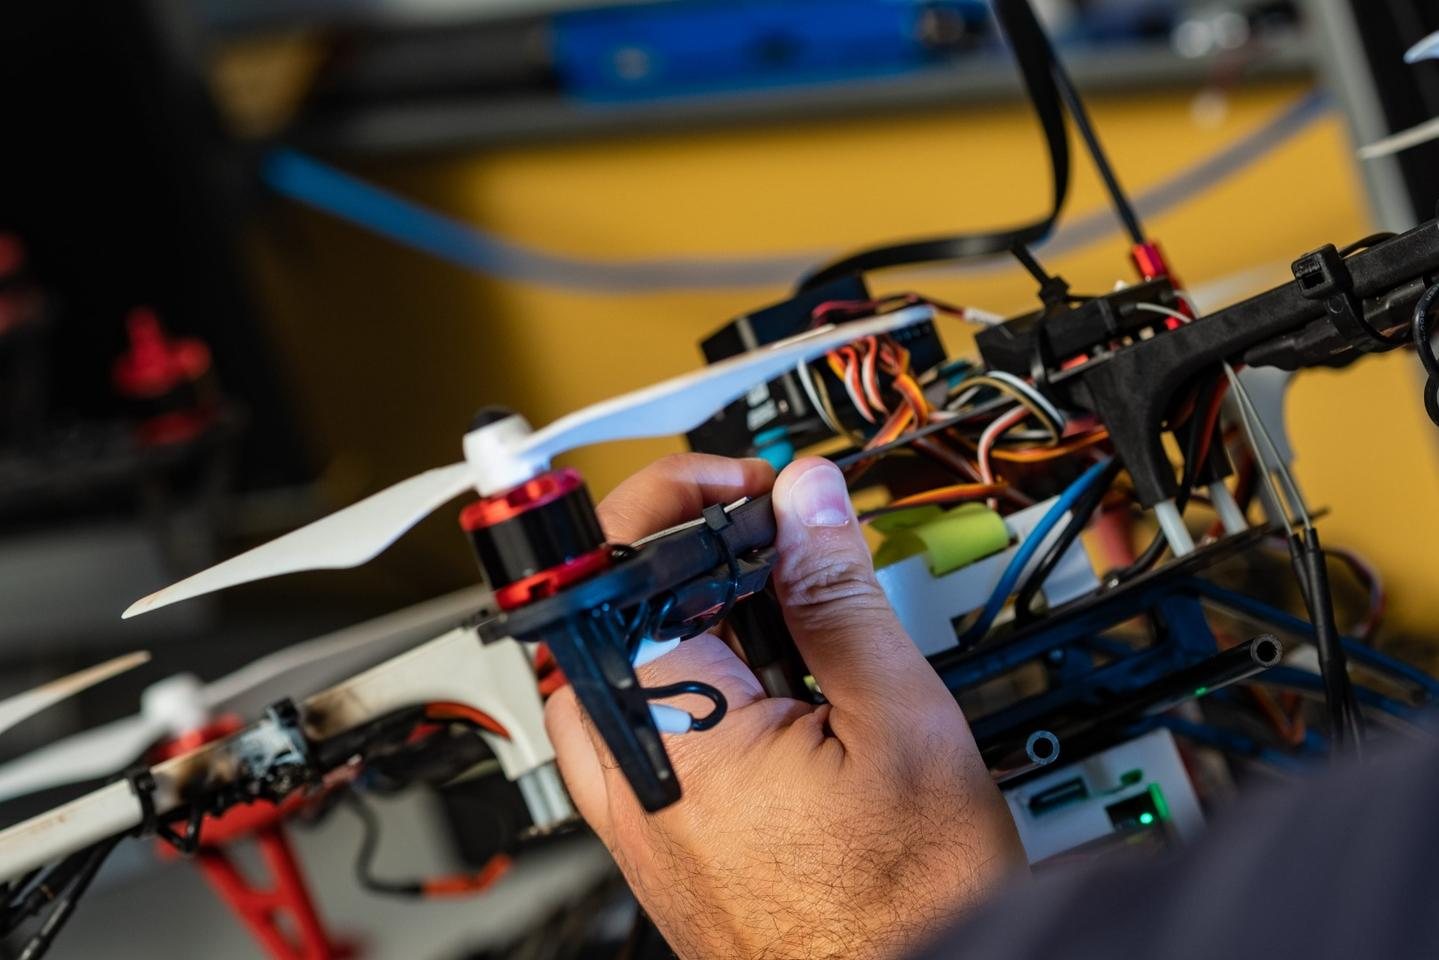 The plan is to put fleets of ASTRO drones into the air toform a network of gas-sniffing machines that use an onboard suite of sensors and transmitters to communicate with one another